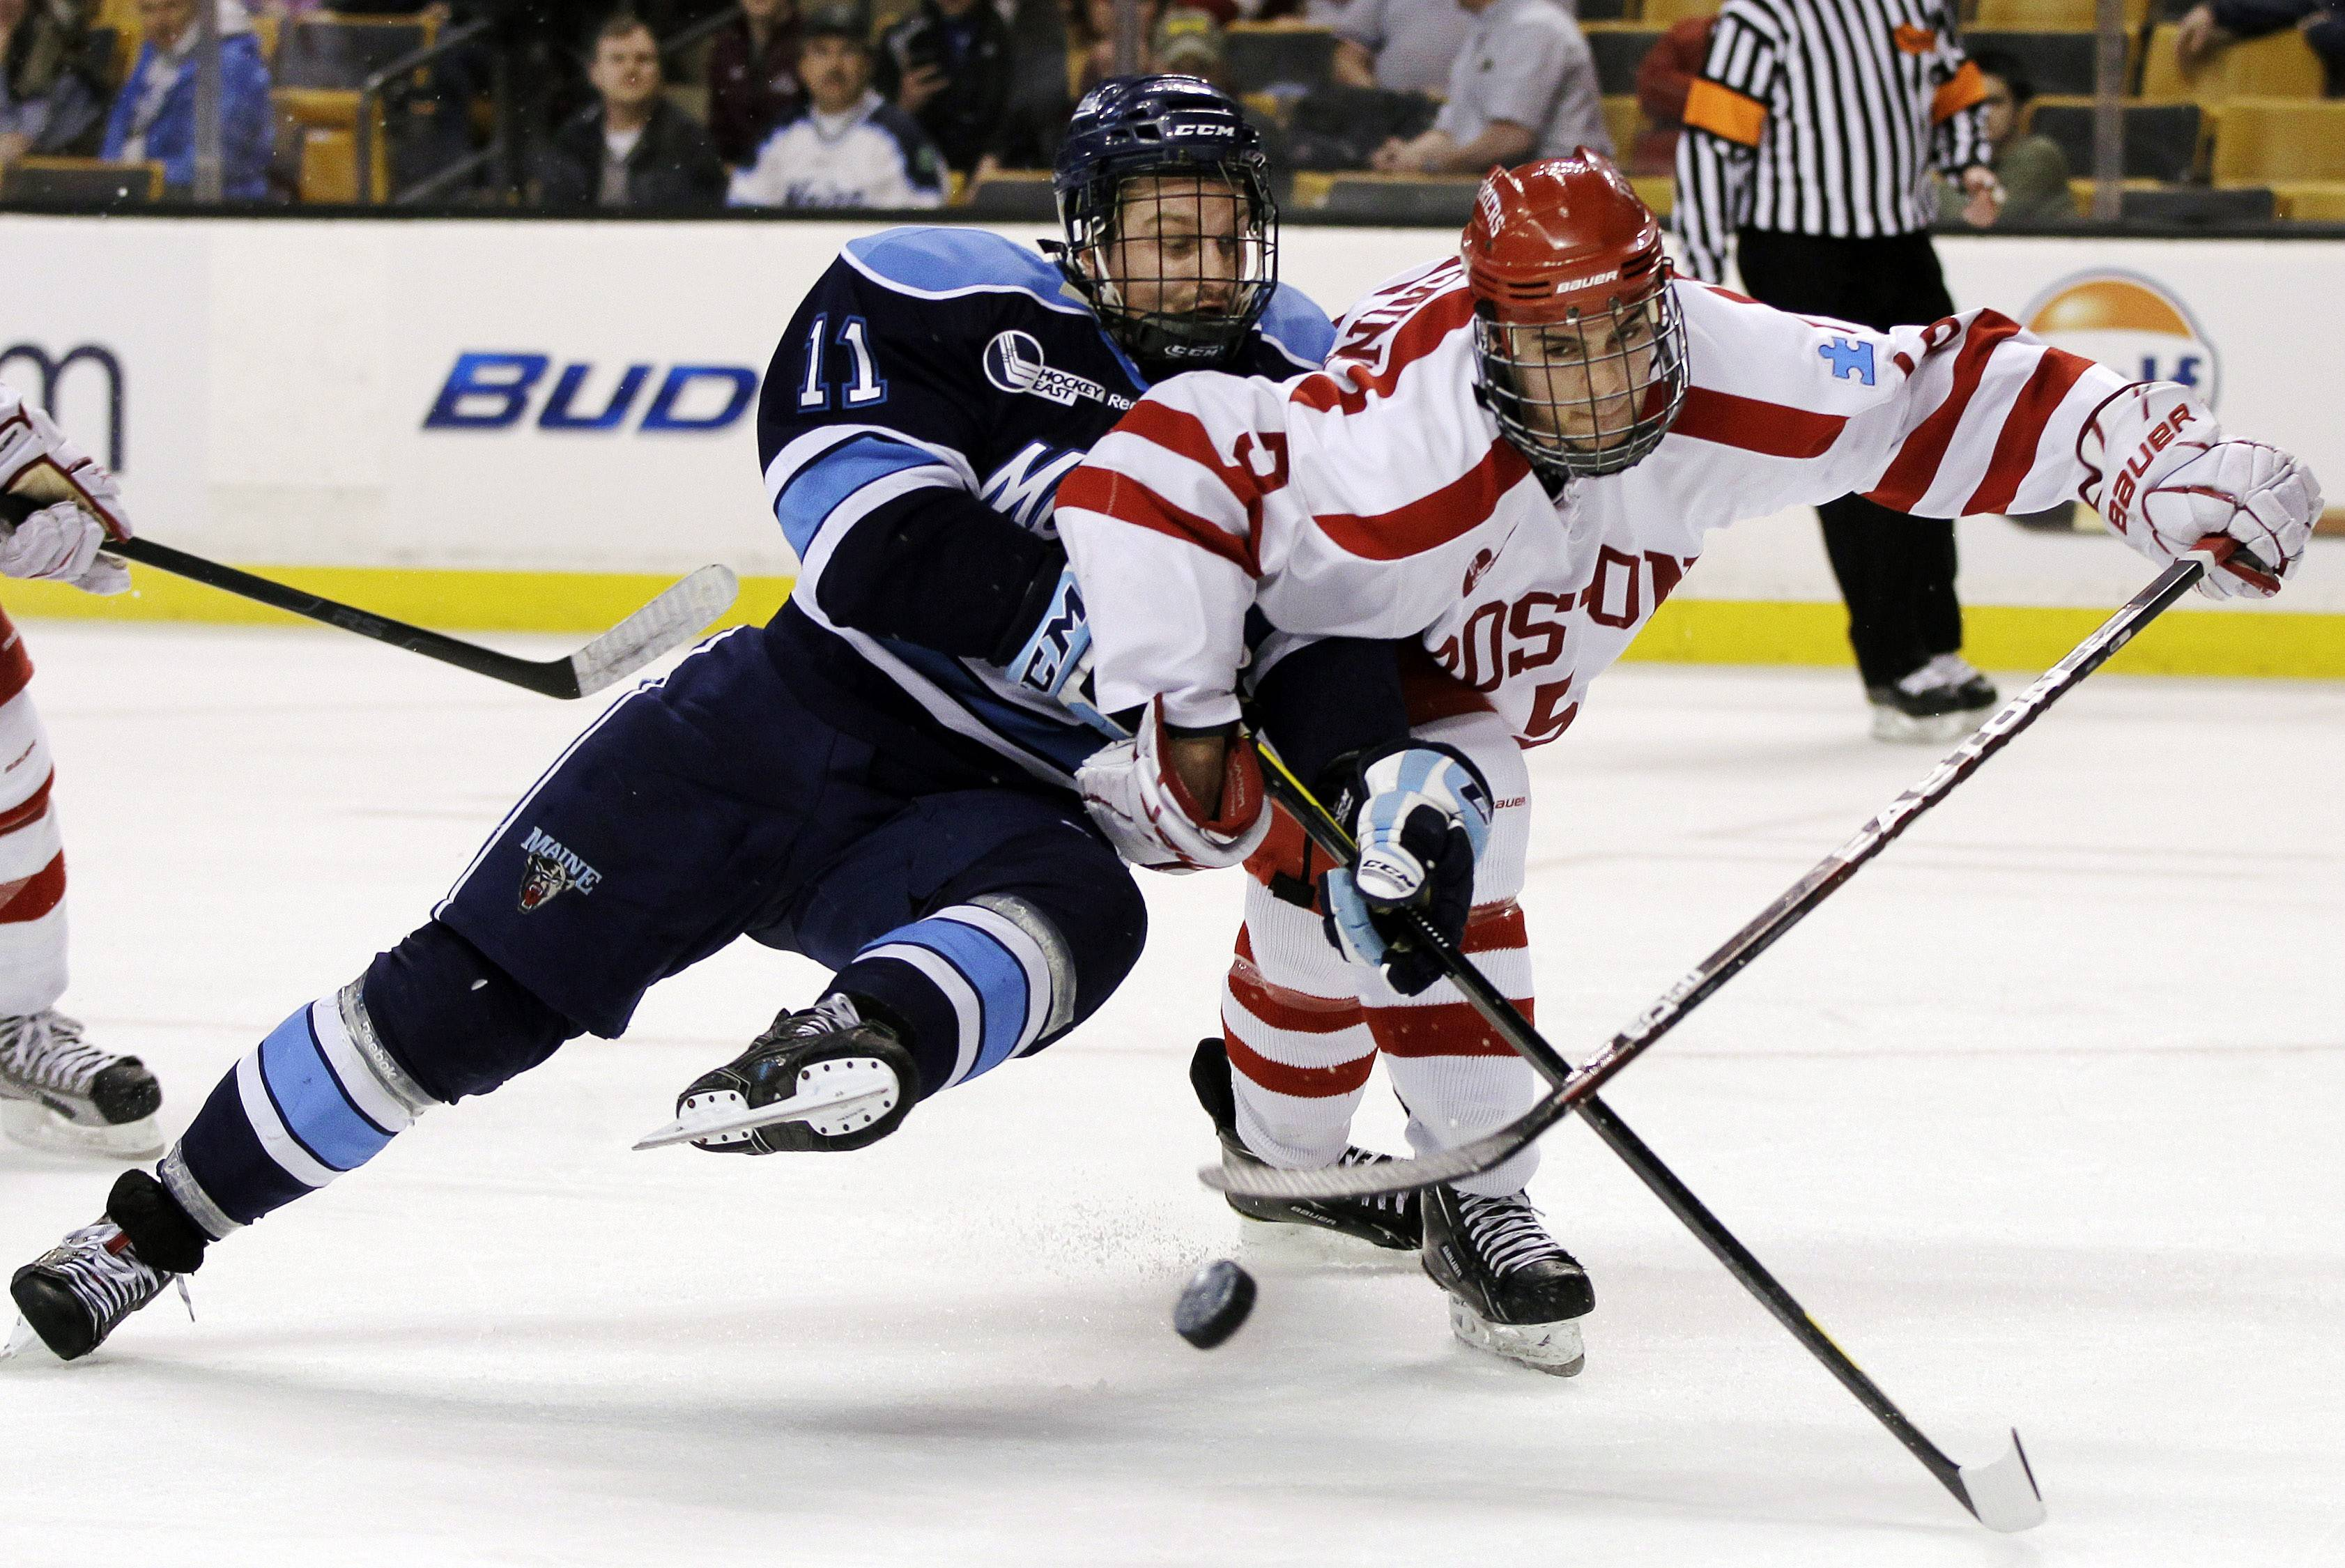 Adam Clendening (5) shown here playing for Boston University in 2012, has put in his time at Rockford, last season setting an IceHogs' franchise record for assists by a defenseman (47), ranking second among all AHL defensemen with 59 points and being named to the 2013-14 AHL first all-star team. He is hoping to see action with the Hawks this season.